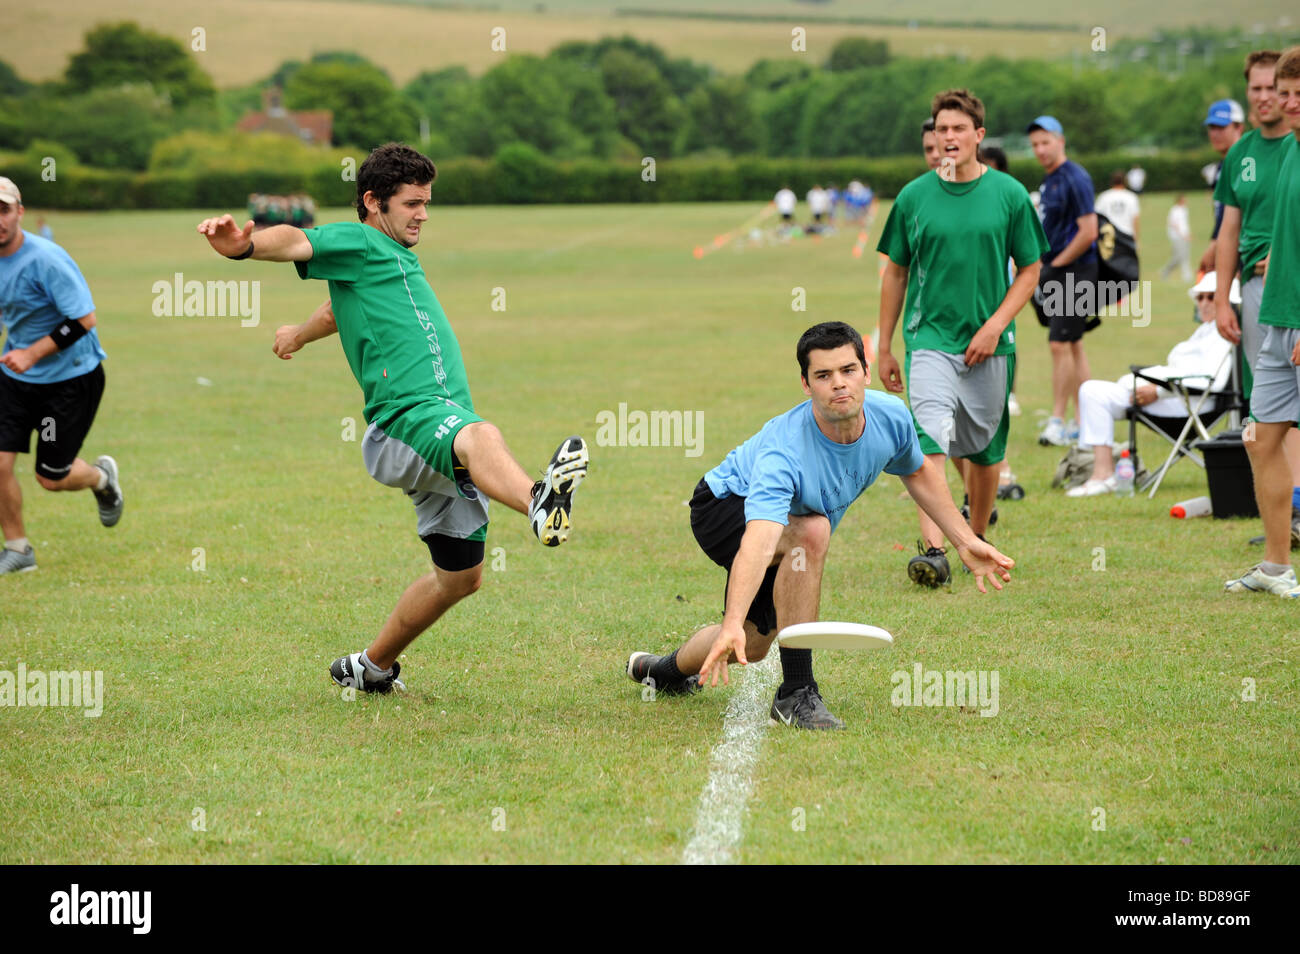 Teams taking part in the Frisbee world championships held in Brighton - Stock Image